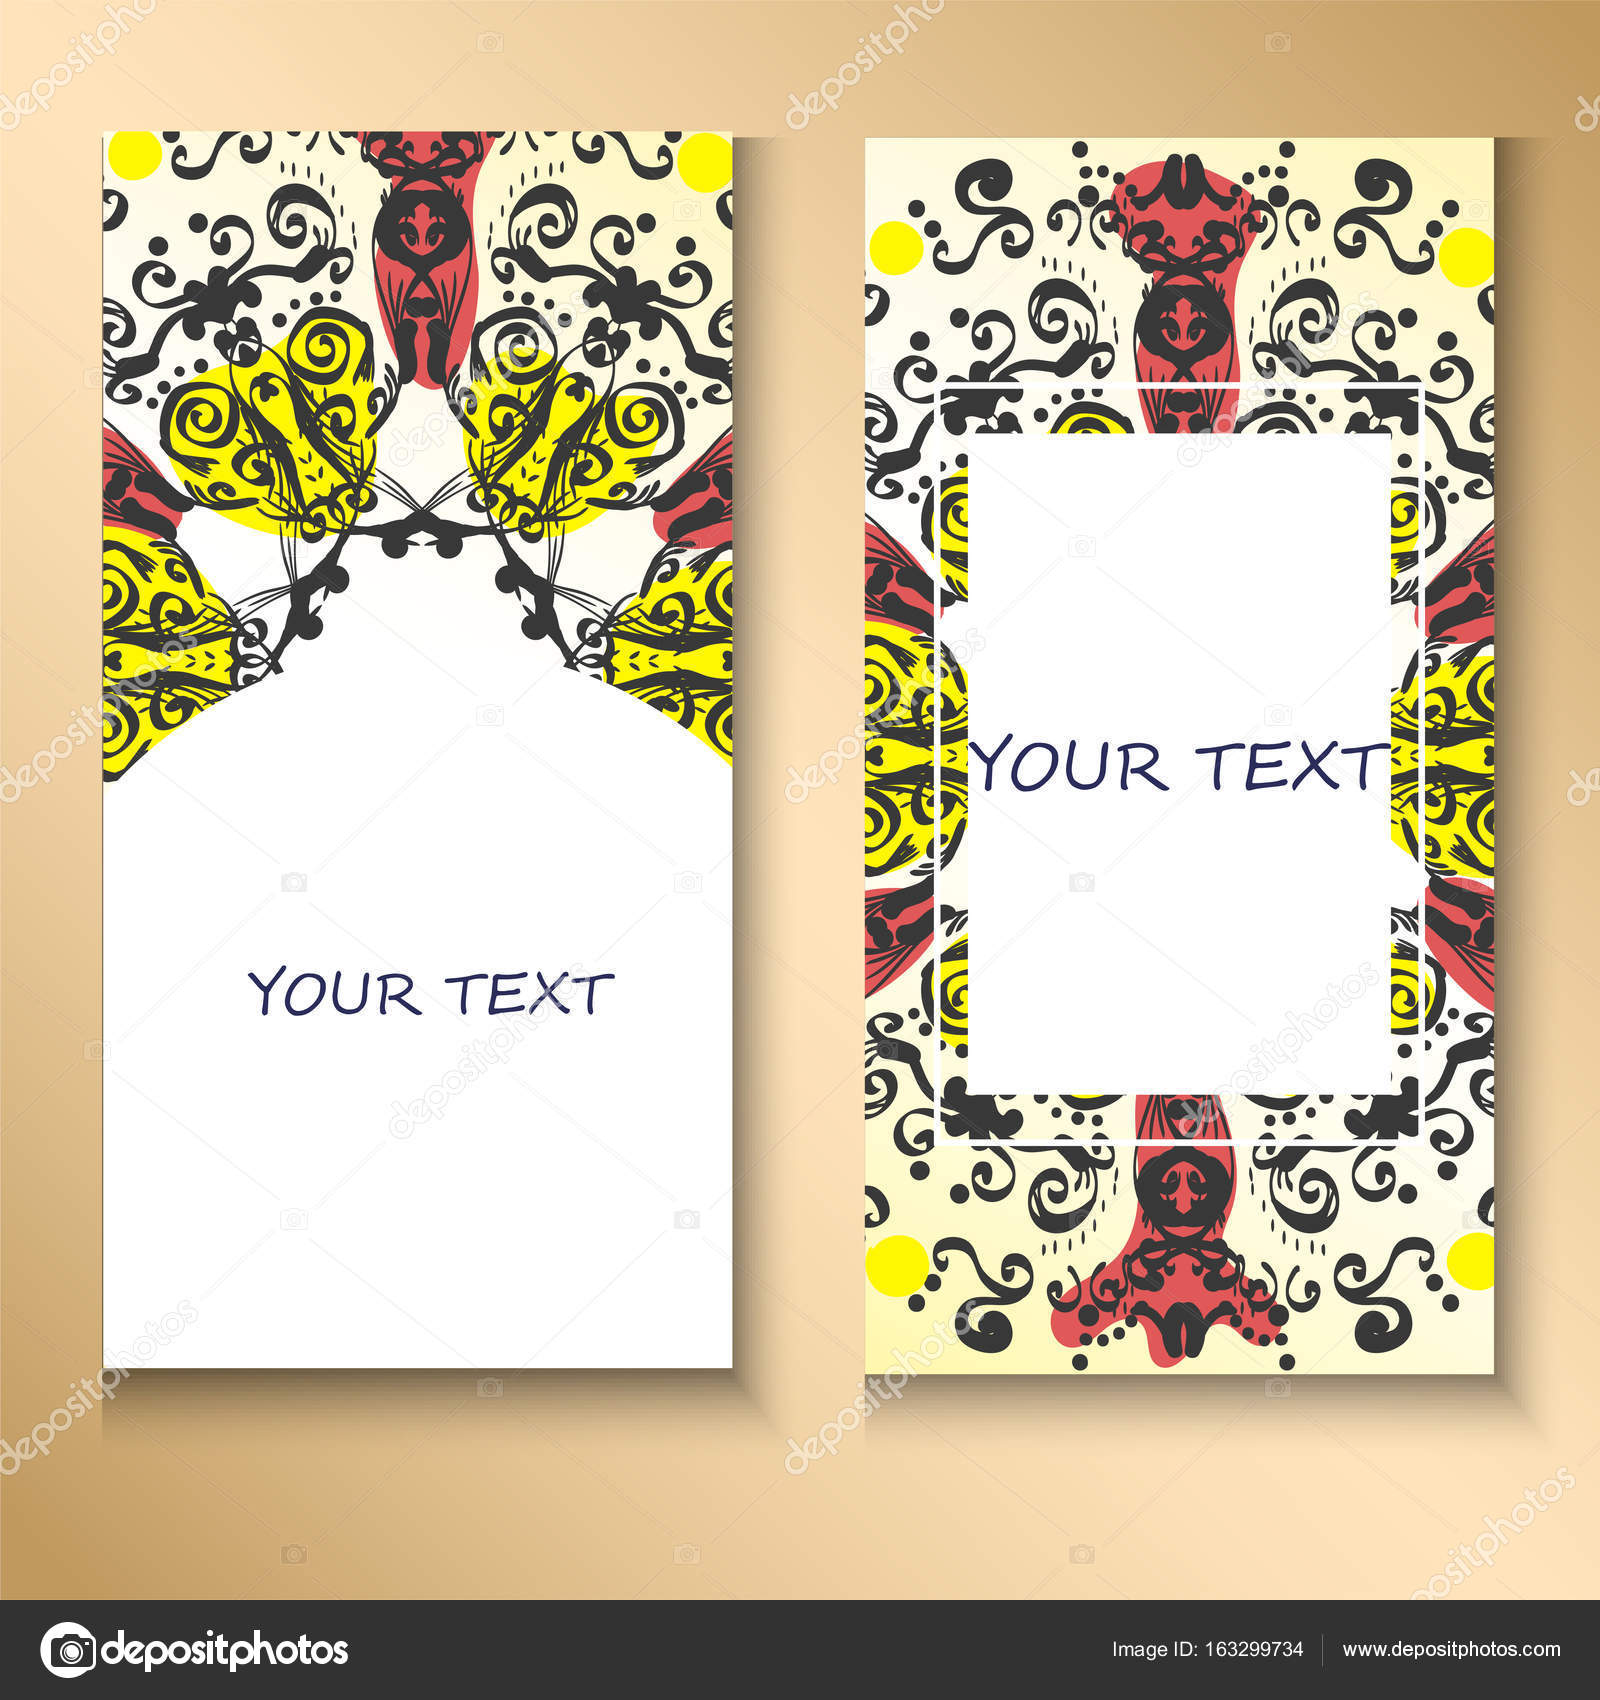 templates set. Business cards, invitations and banners. Floral ...